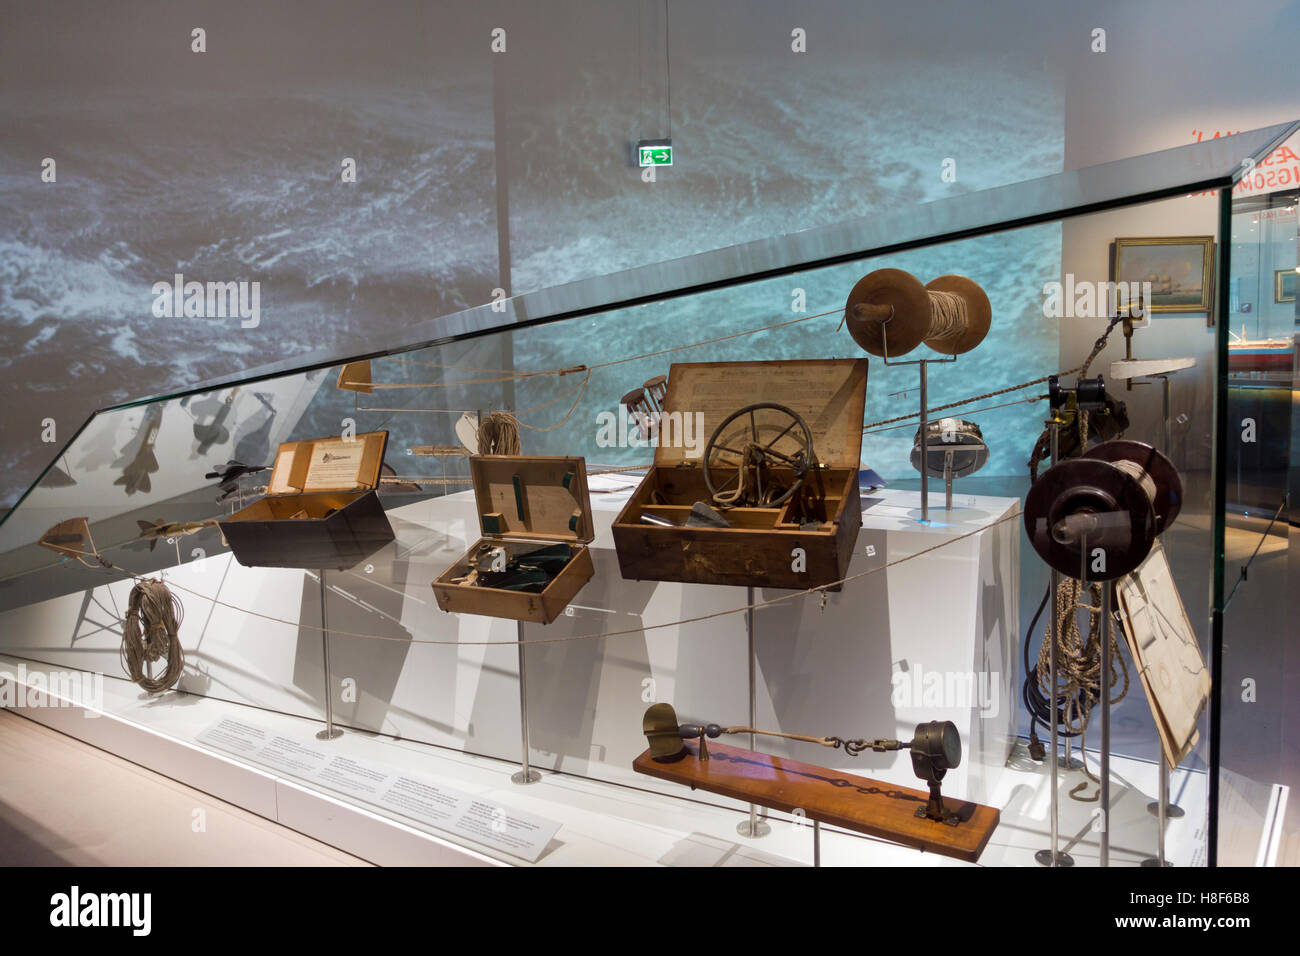 Historic nautical and navigational instruments at the Danish Maritime Museum (M/S Museet for Søfart) in Elsinore - Stock Image